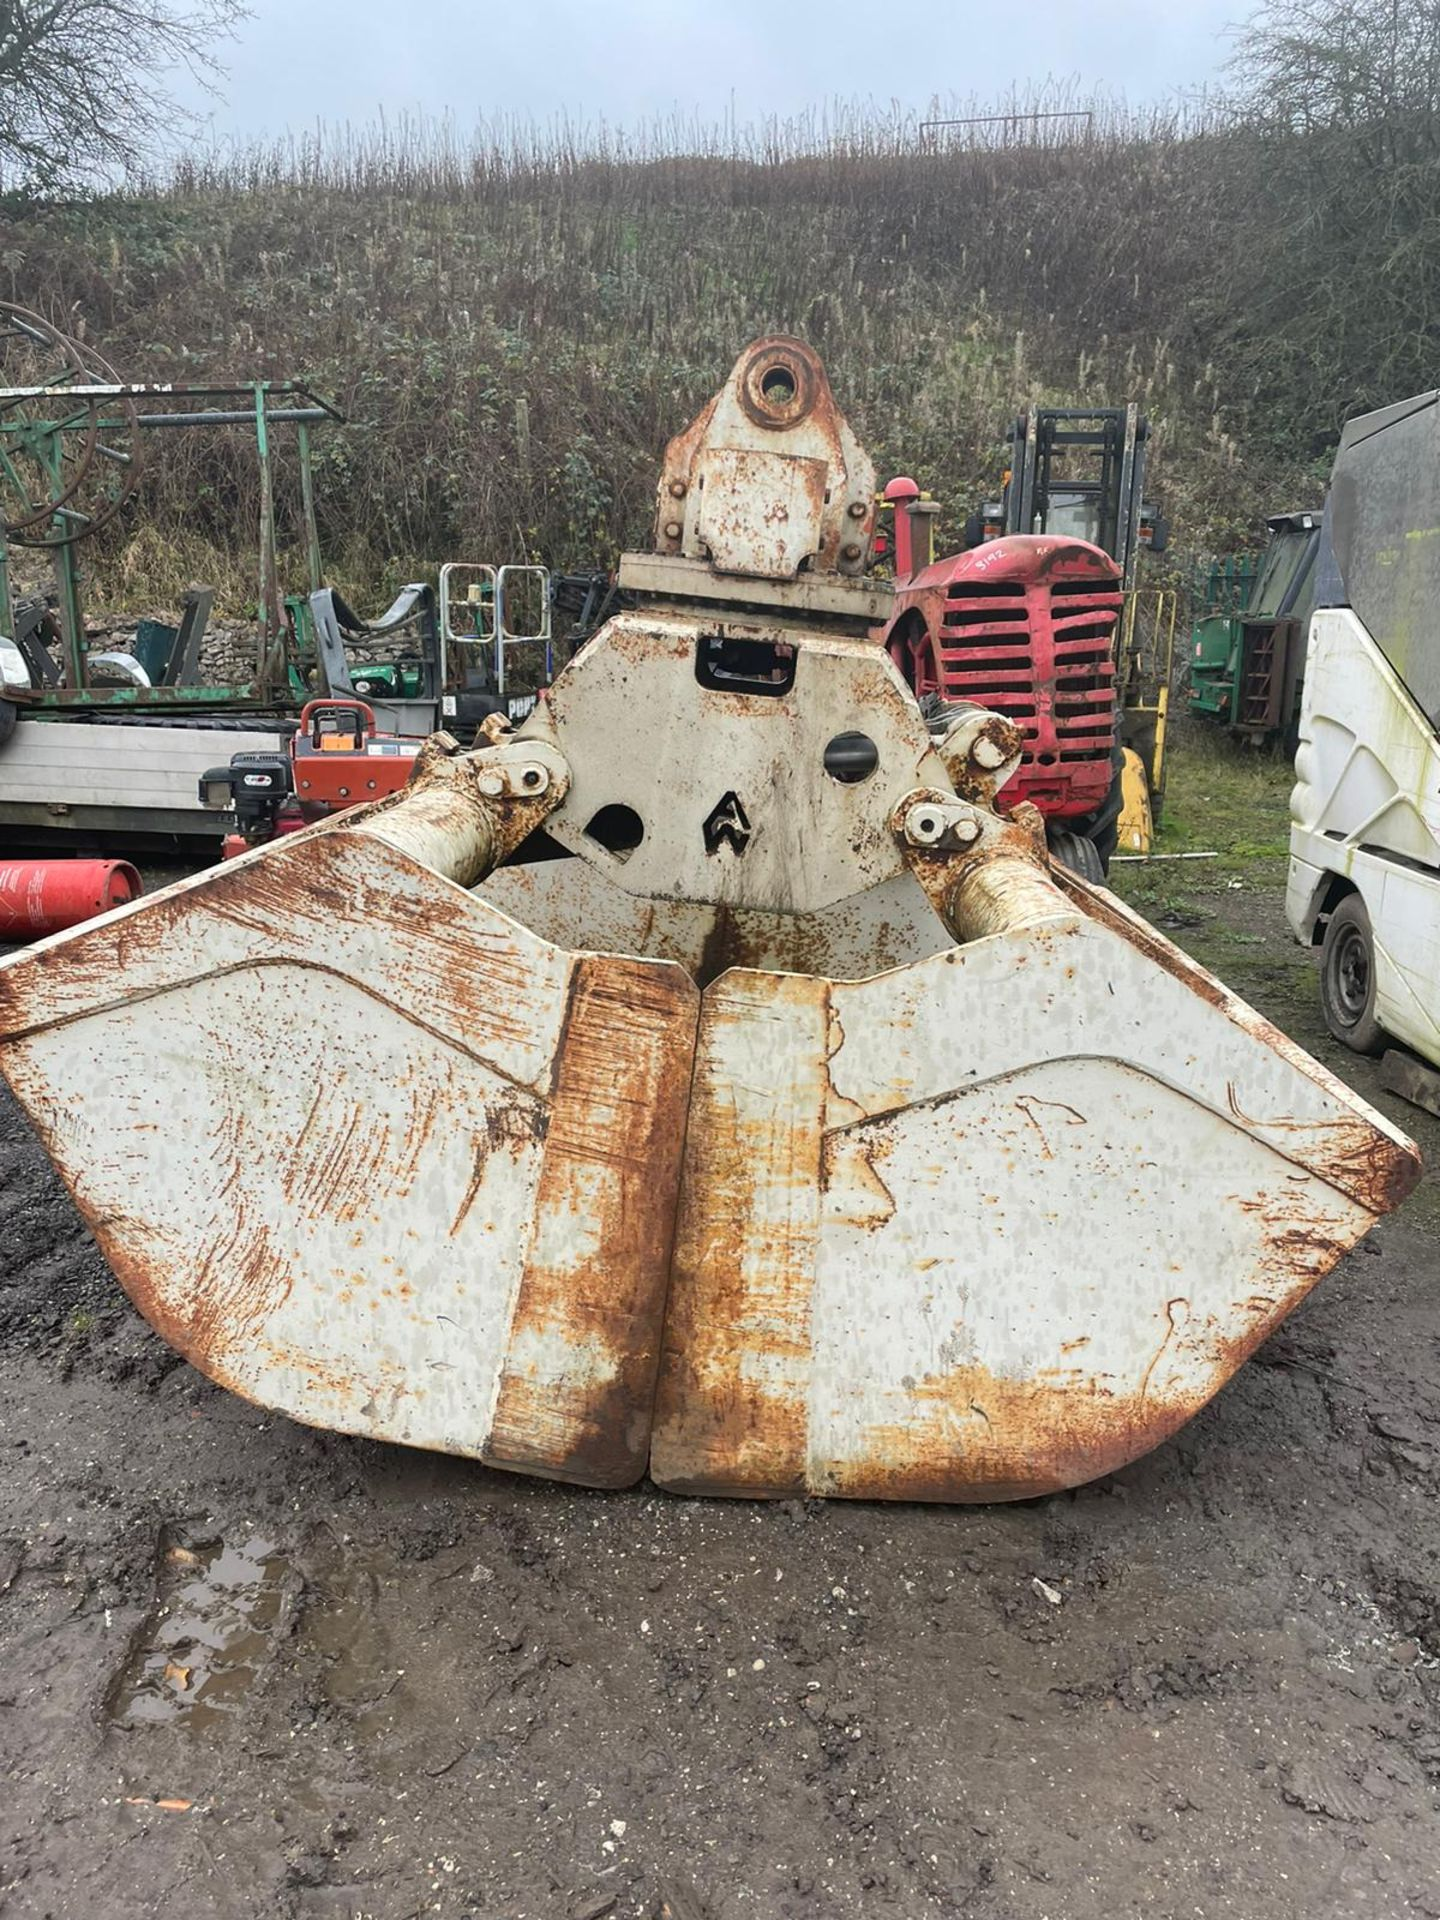 TEREX ATLAS E832-2 GRAPPLE, ROTATING BODY, WEIGHT: 193KG, DONE LITTLE WORK *PLUS VAT* - Image 2 of 8